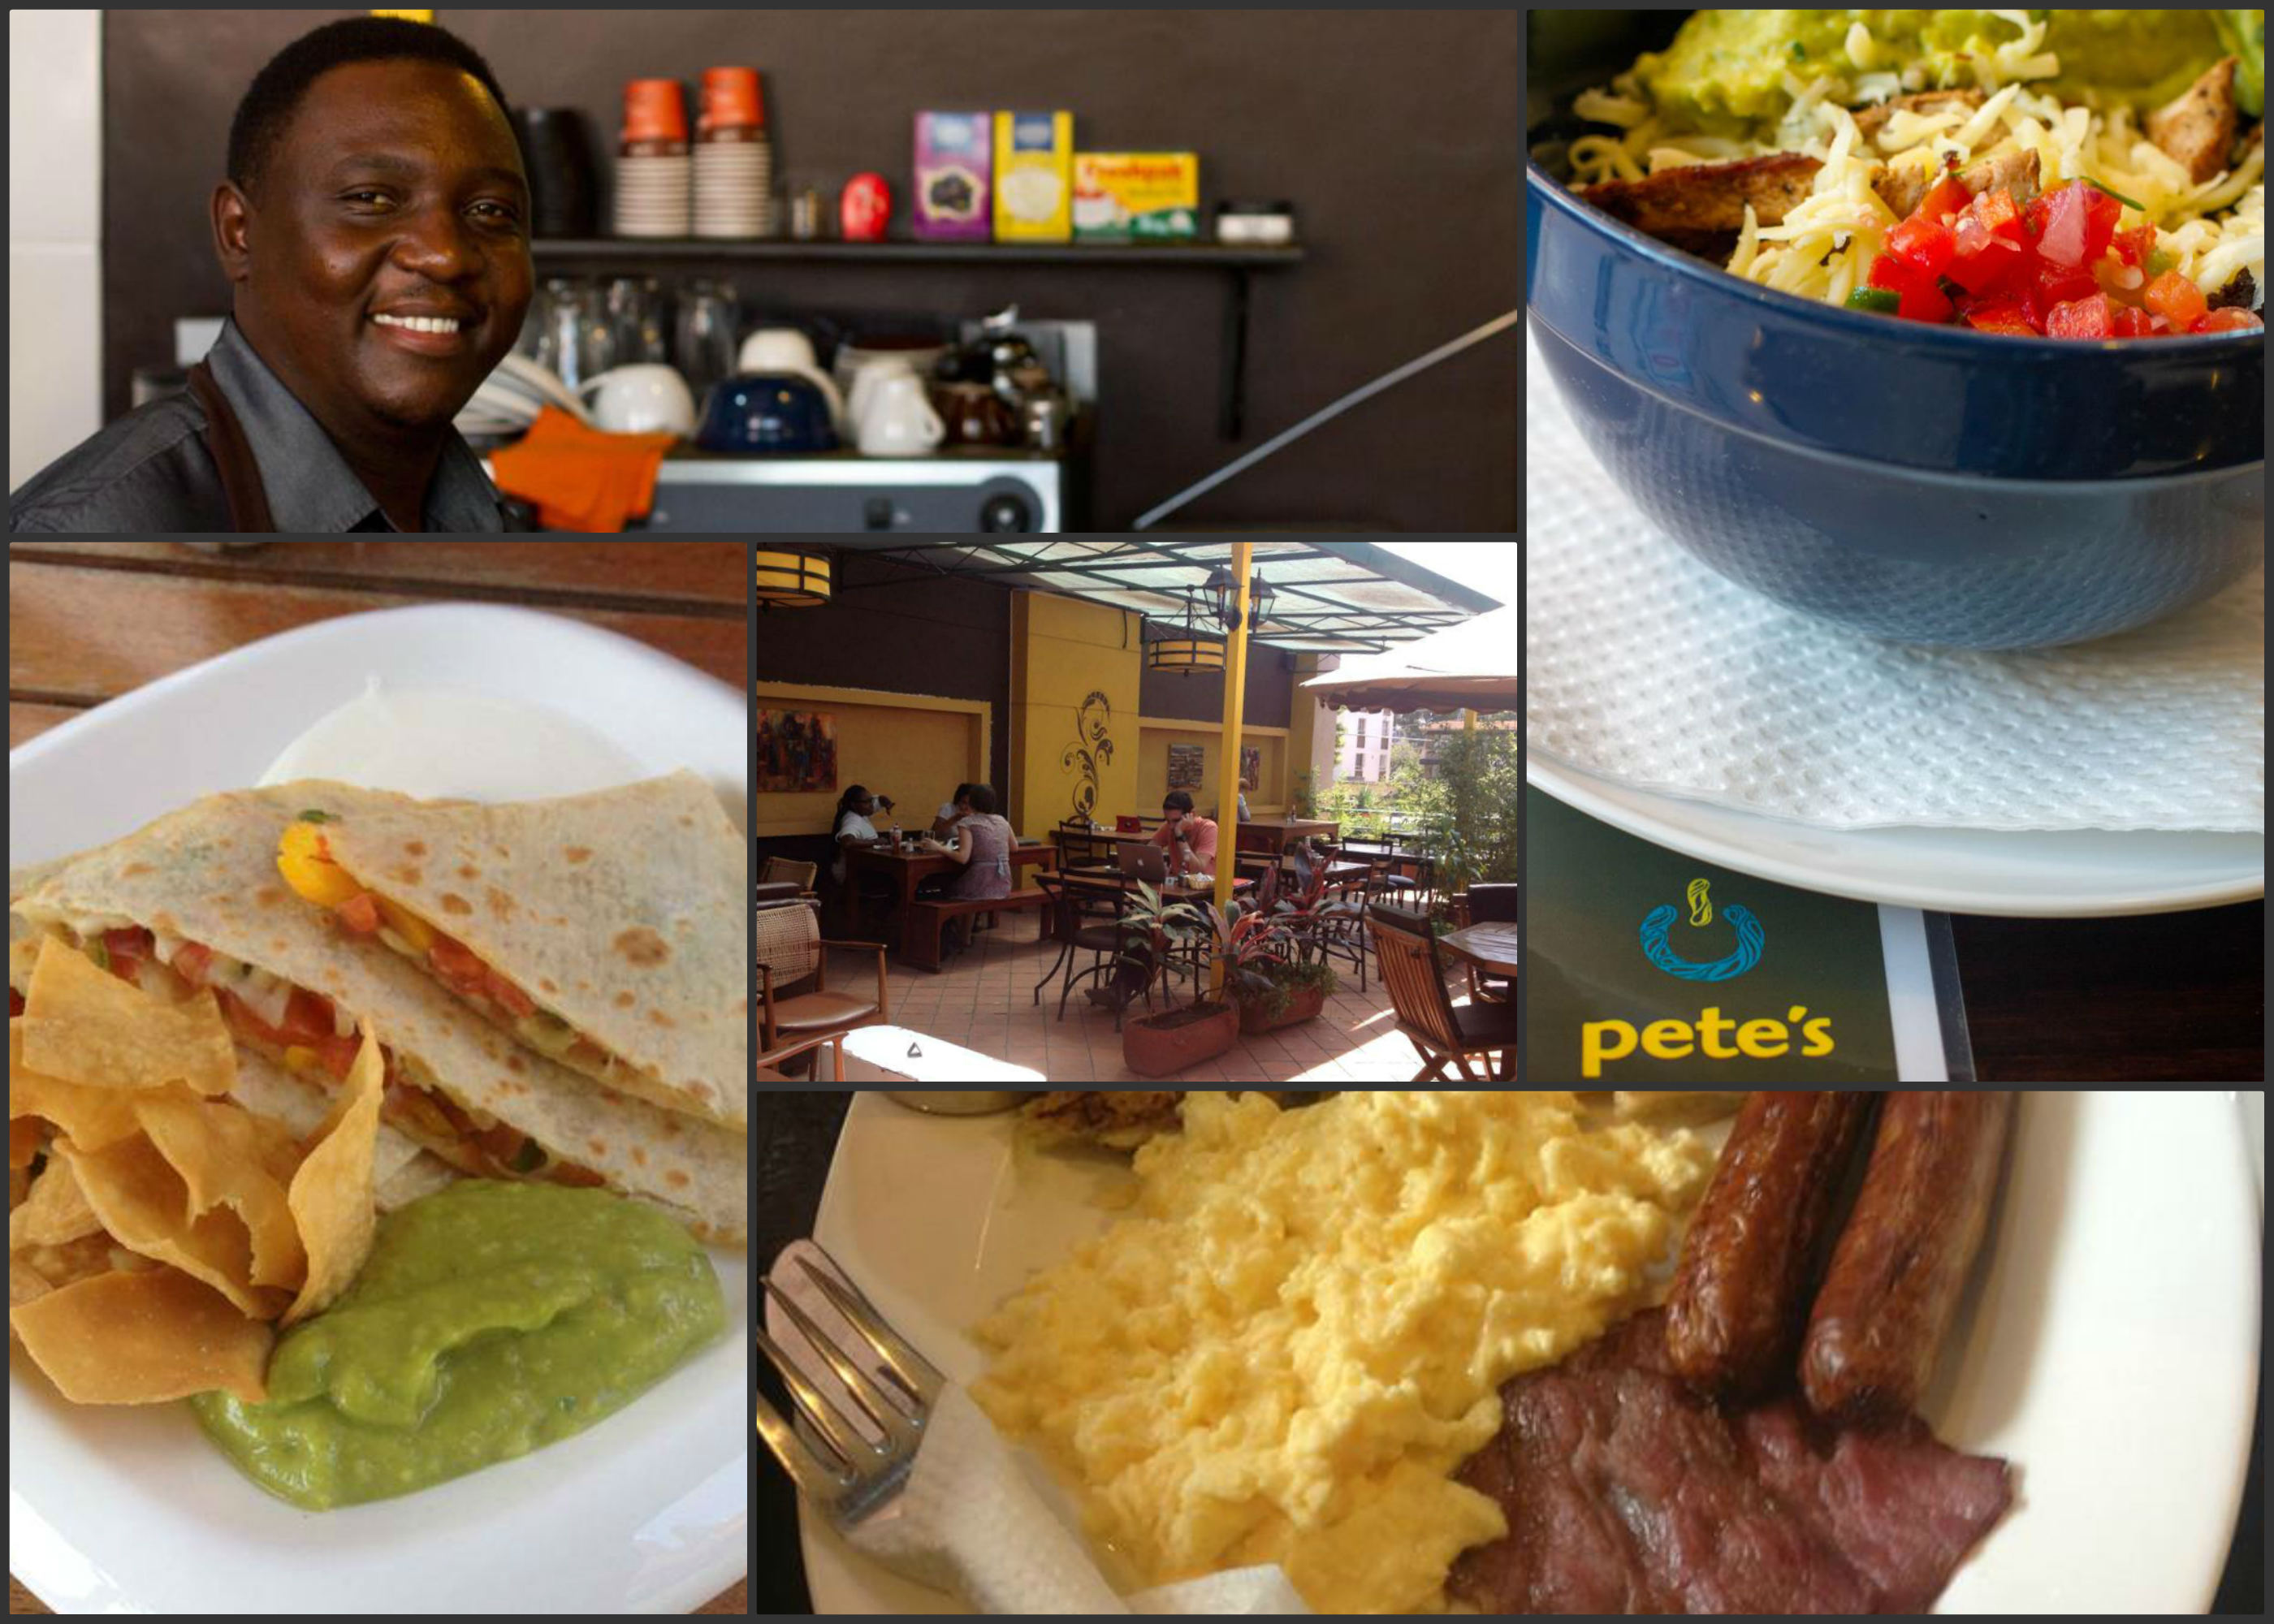 Pete's Cafe and Burrito Haven